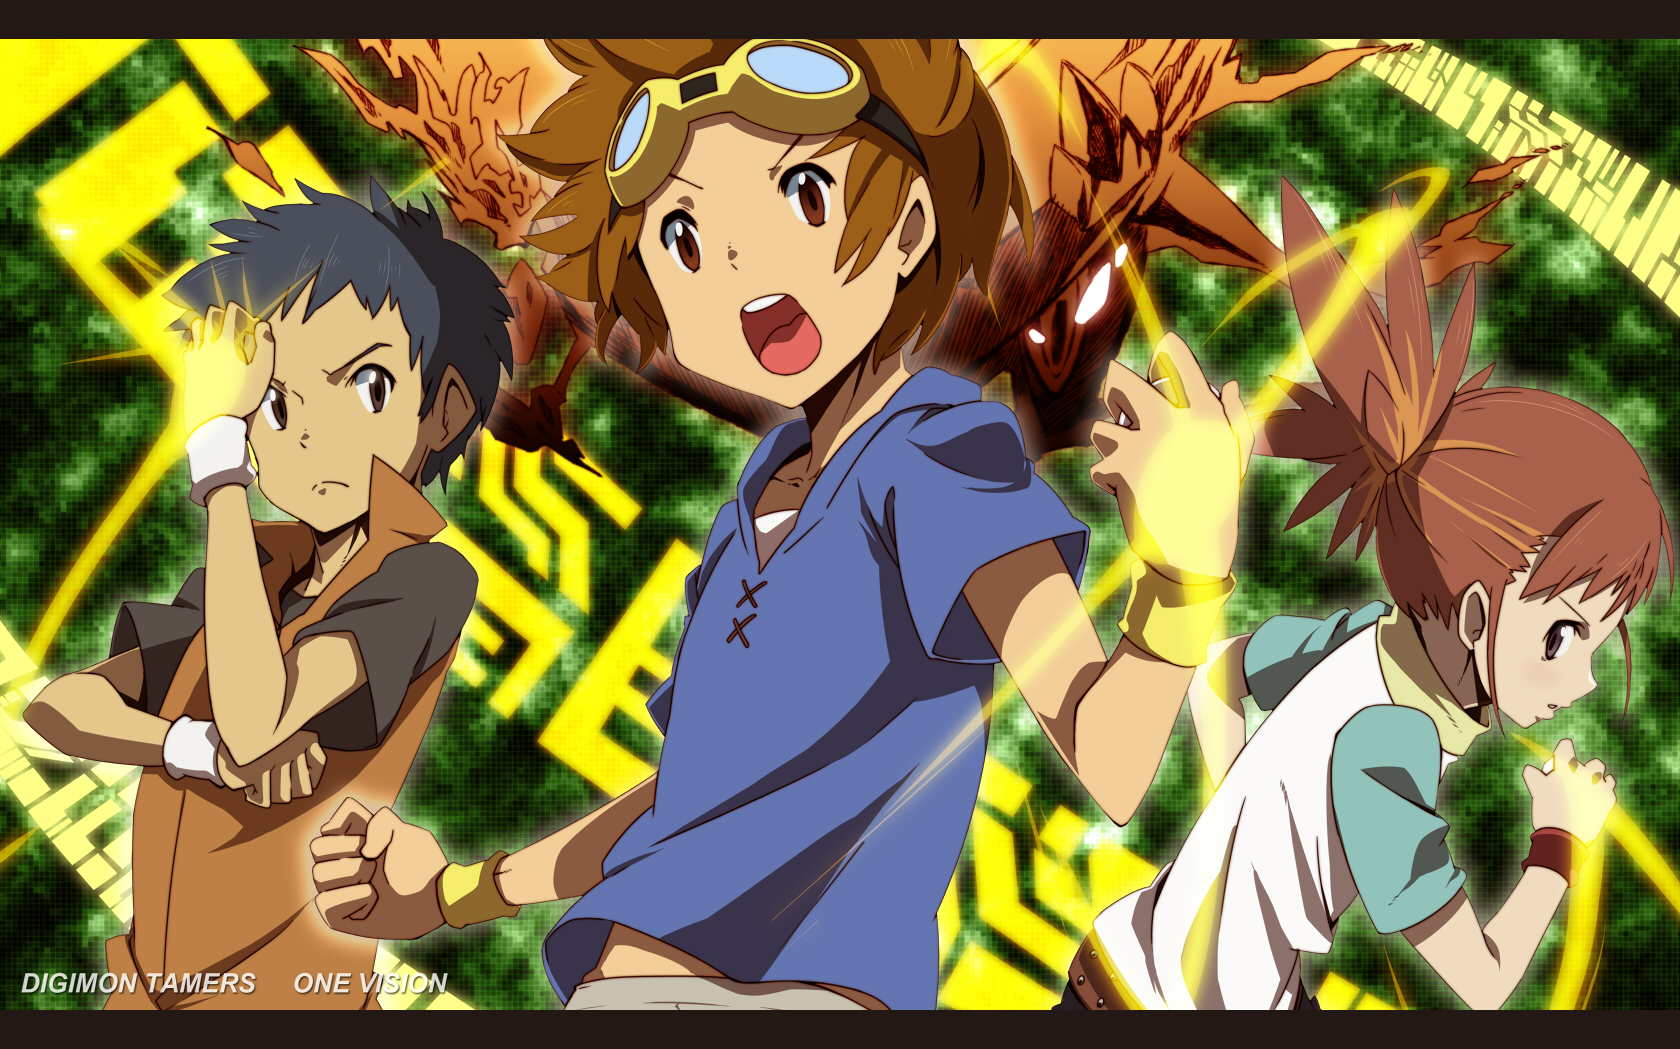 Digimon Wallpaper Widescreen